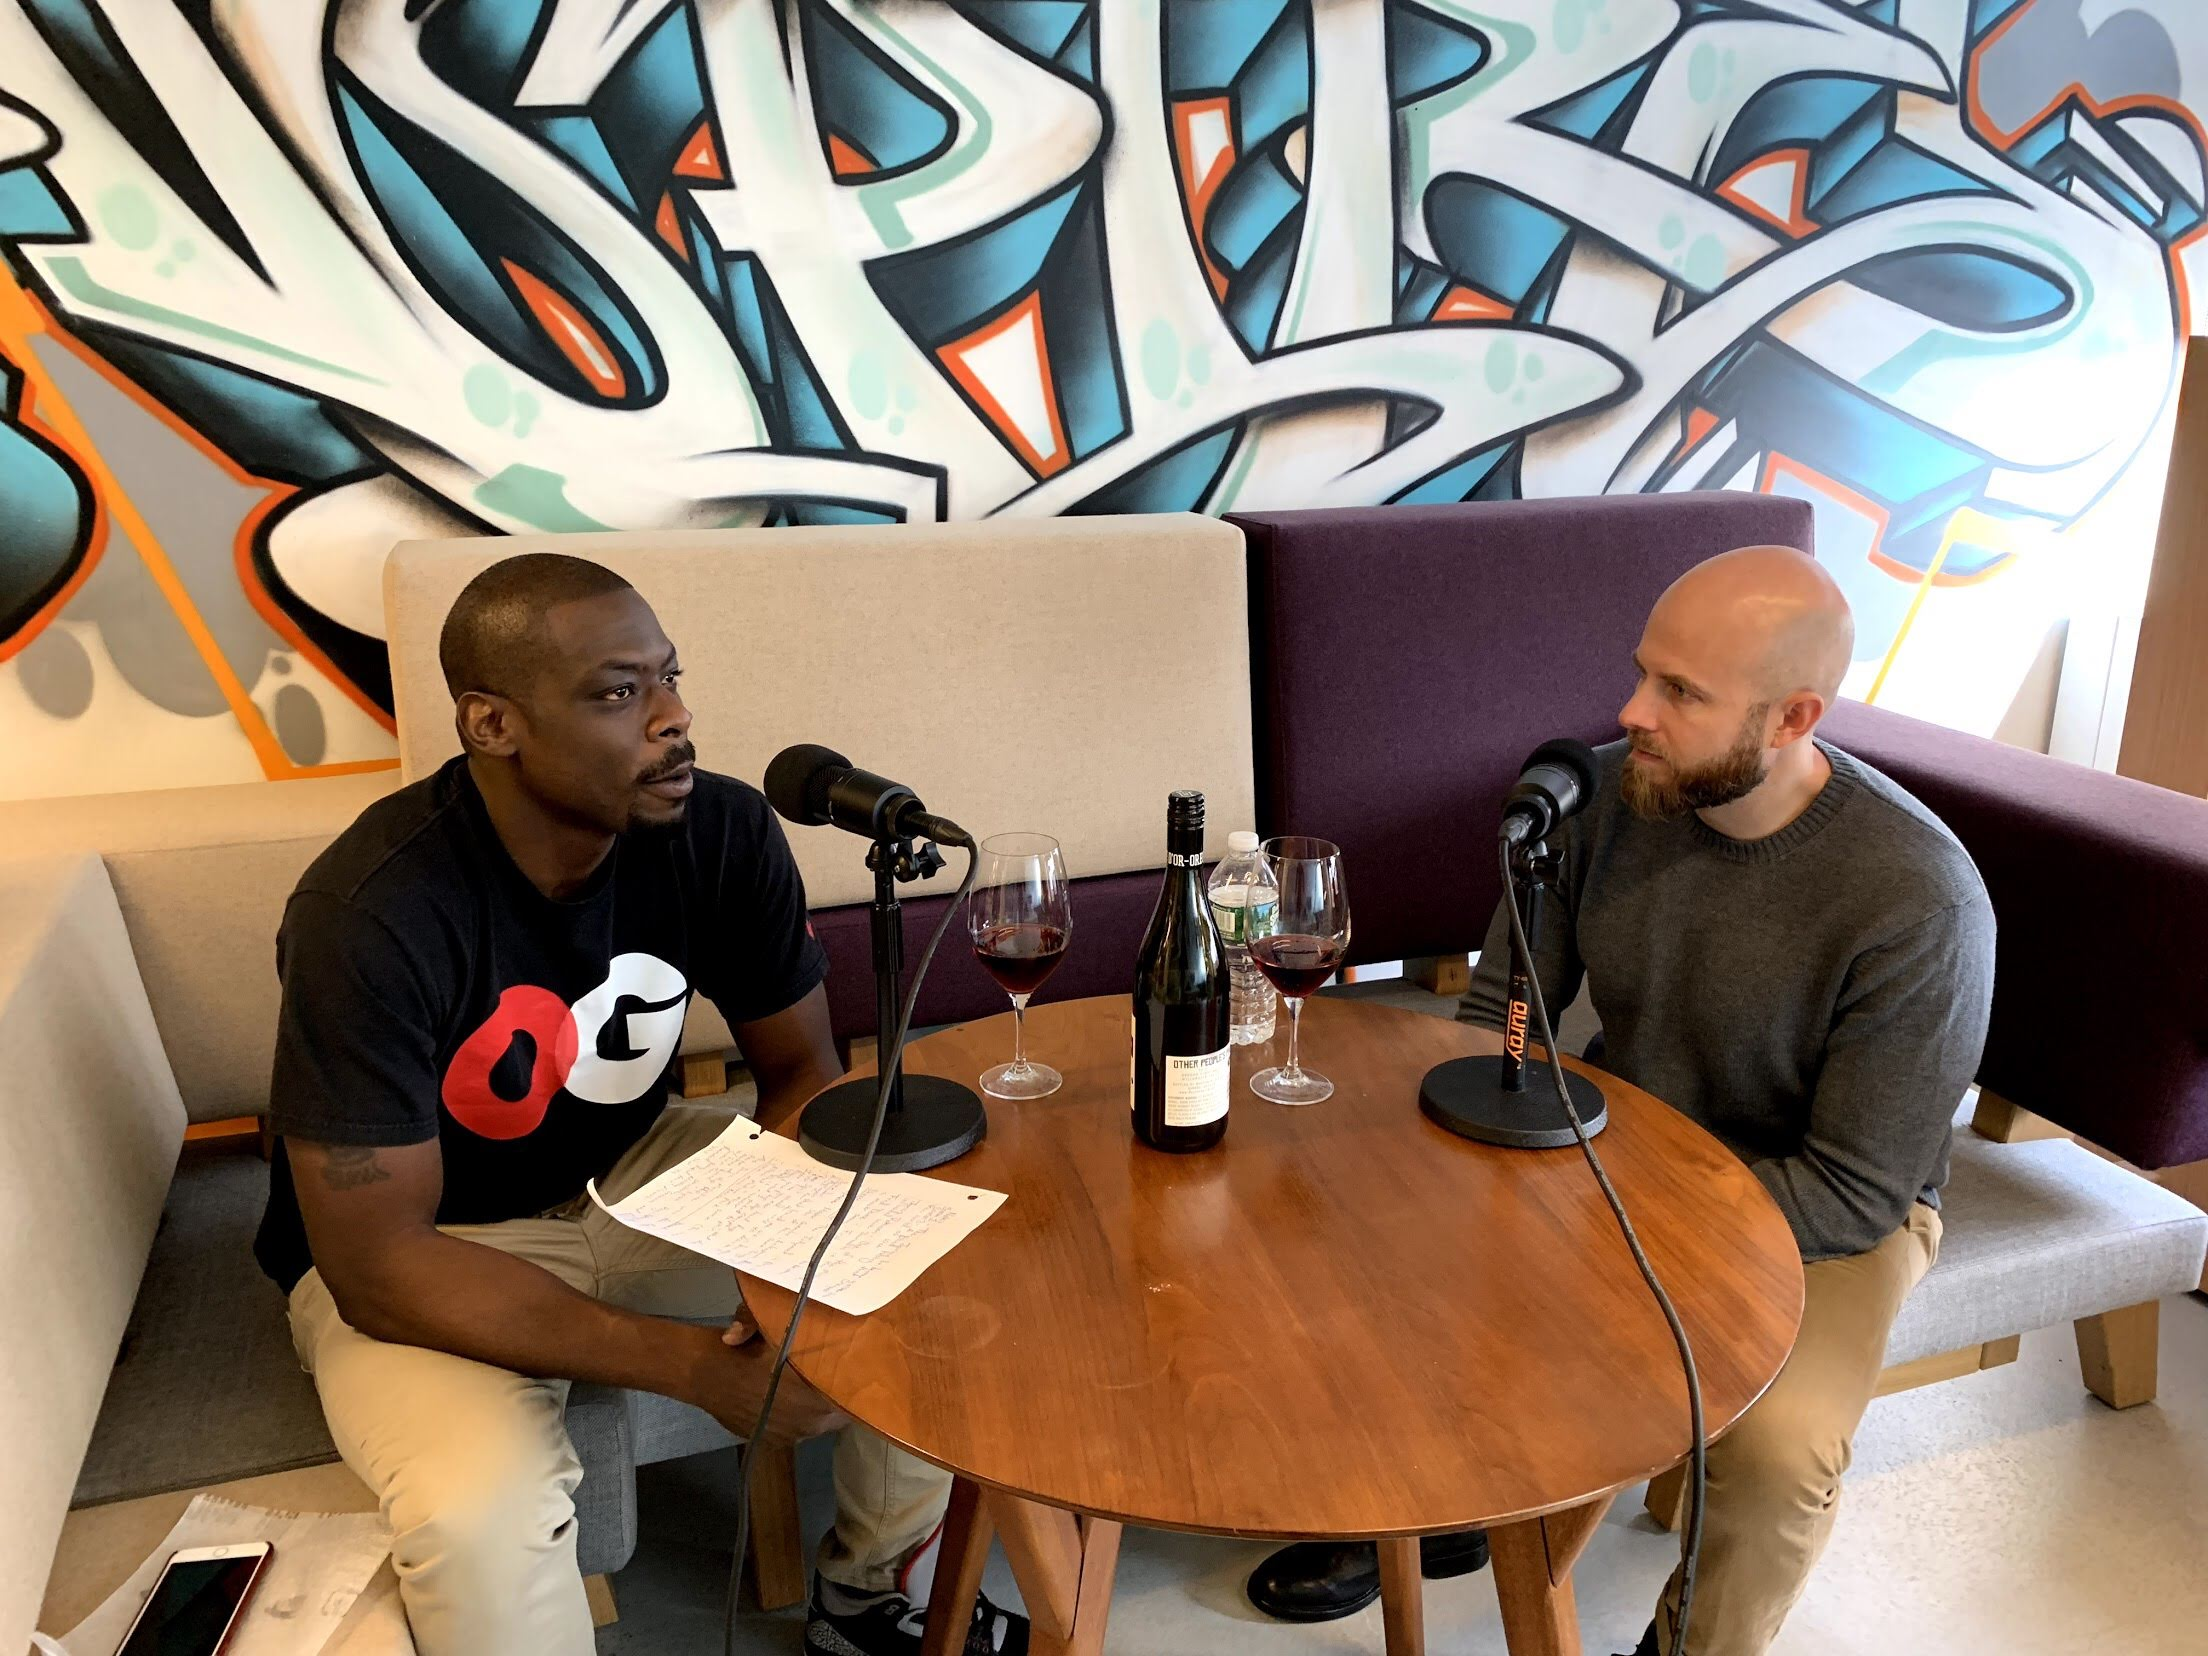 Jermaine Stone and Dustin Wilson on Wine and Hip Hop